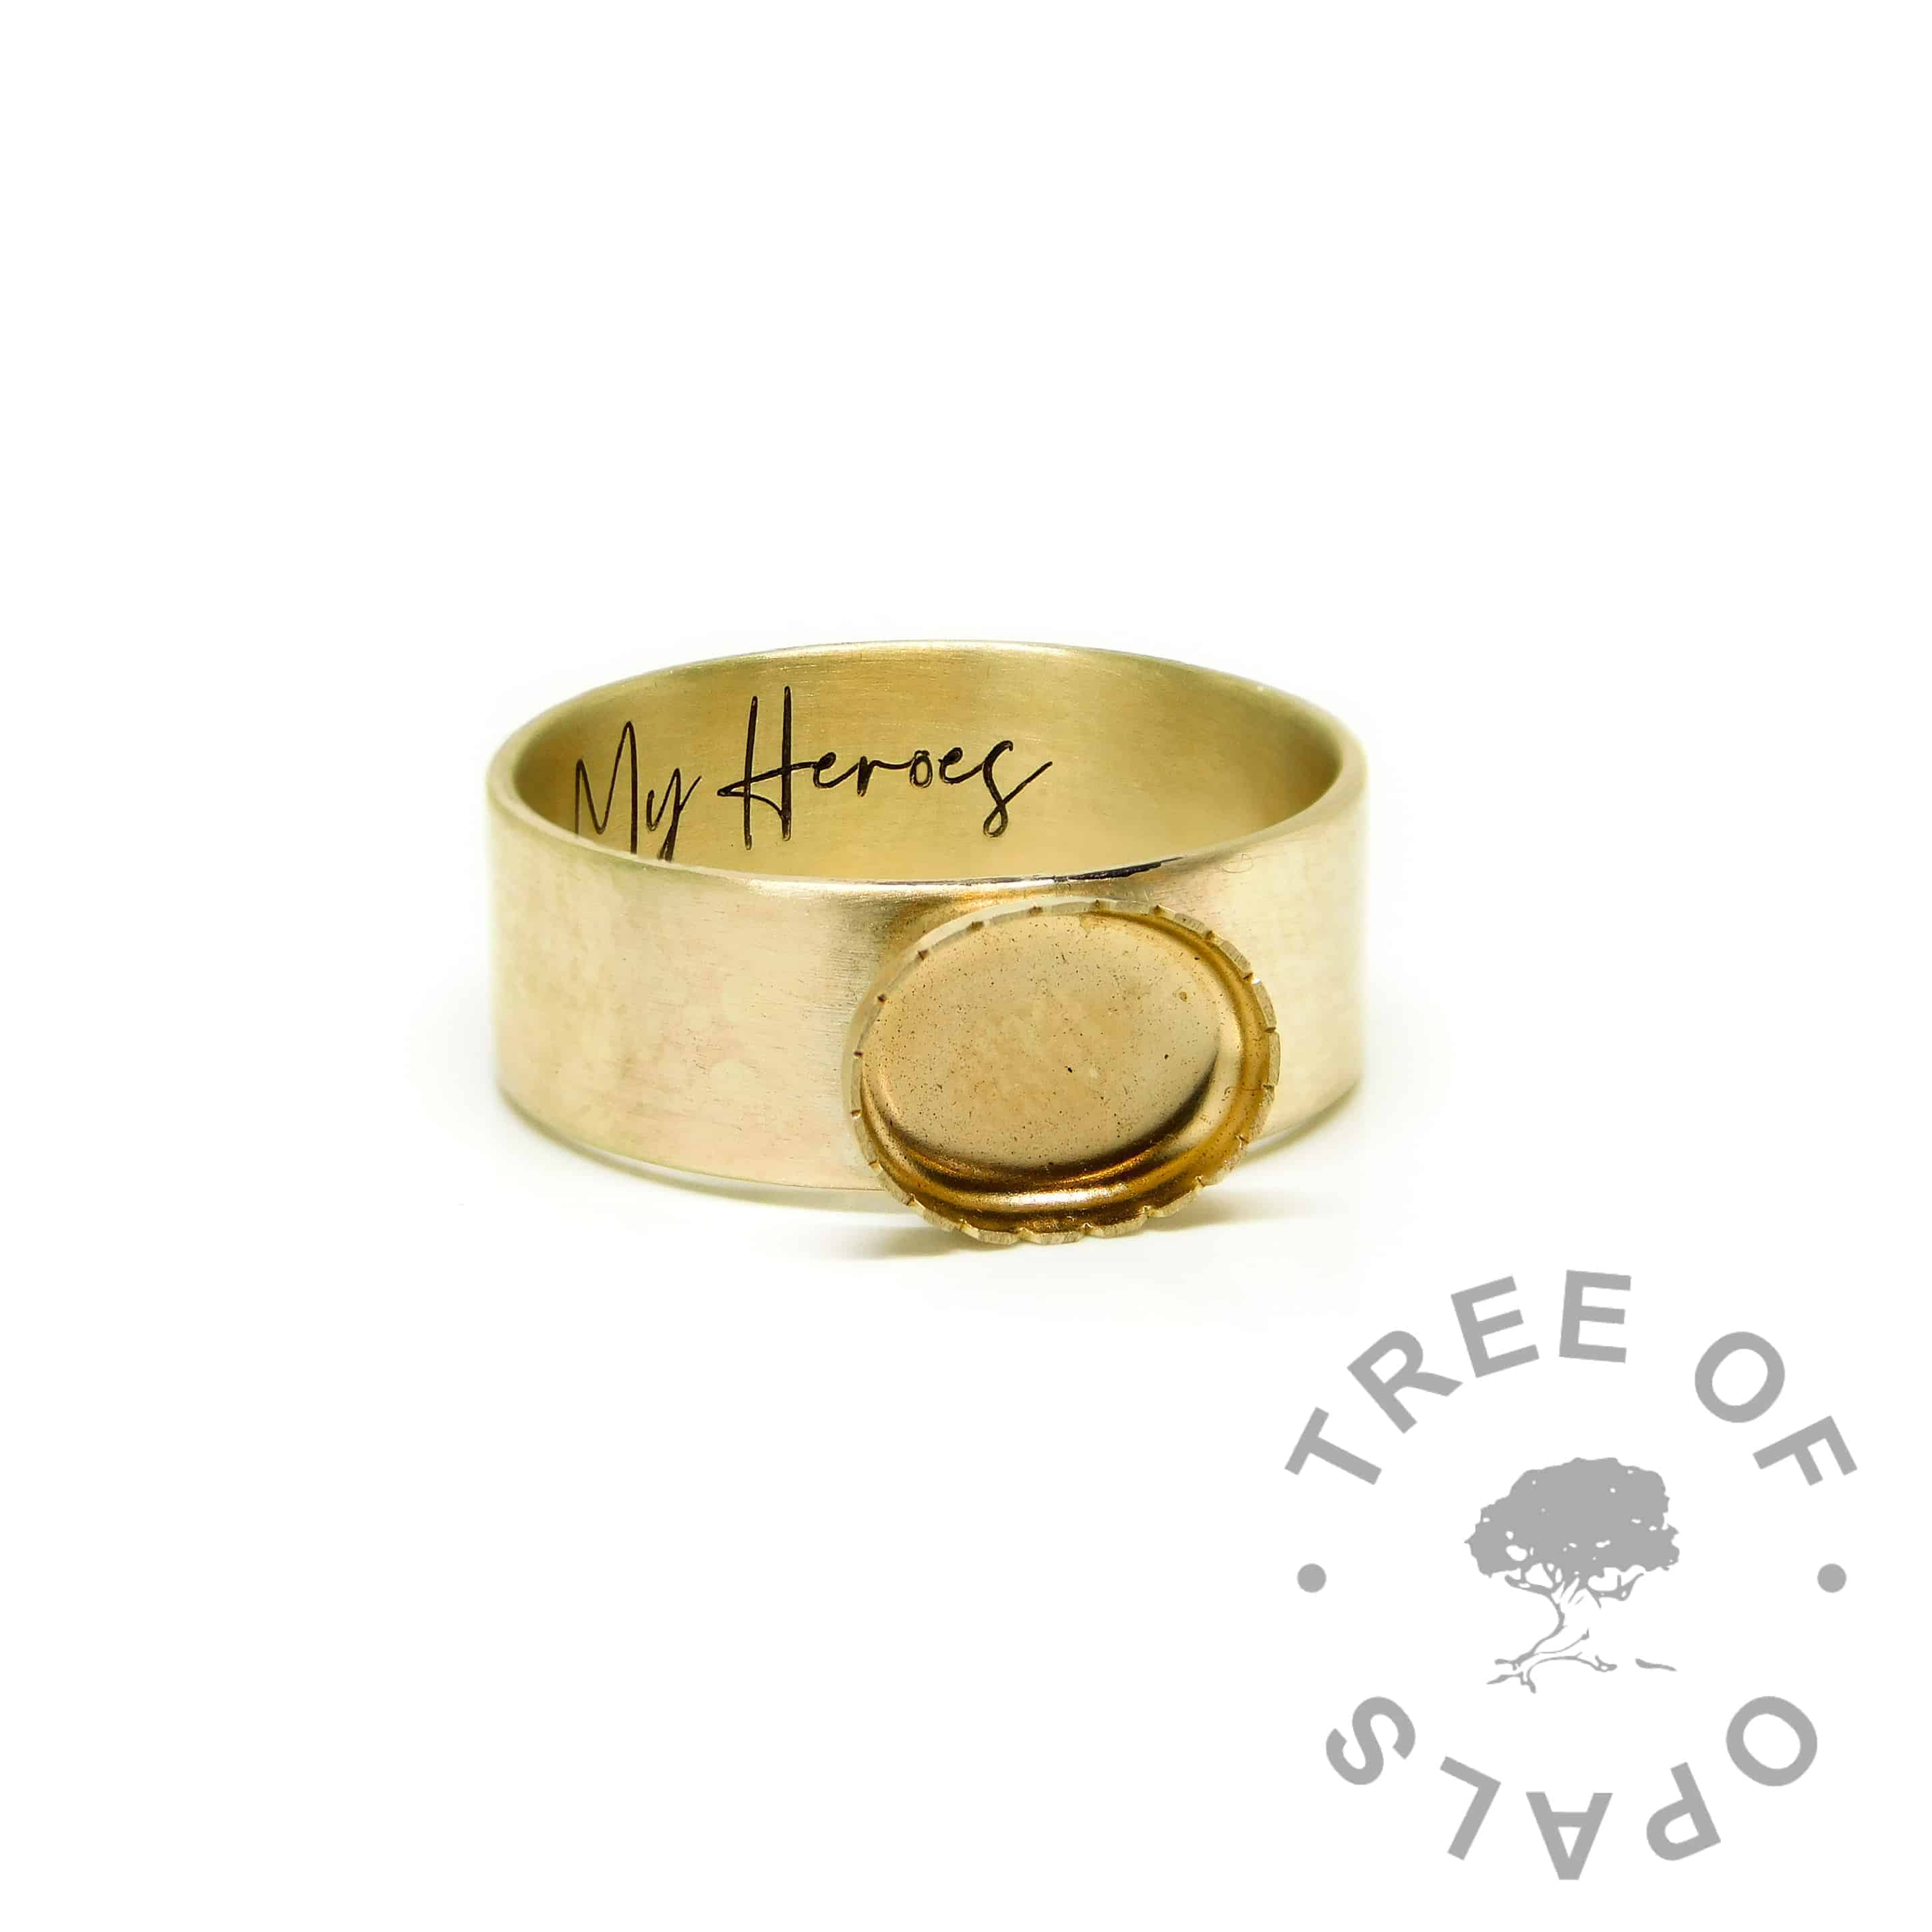 chunky gold ring engraved inside in Silver South Script font. Brushed band in 6mm width. The serrated points have been partially filed away which means less protection for the stone - we do not advise this!